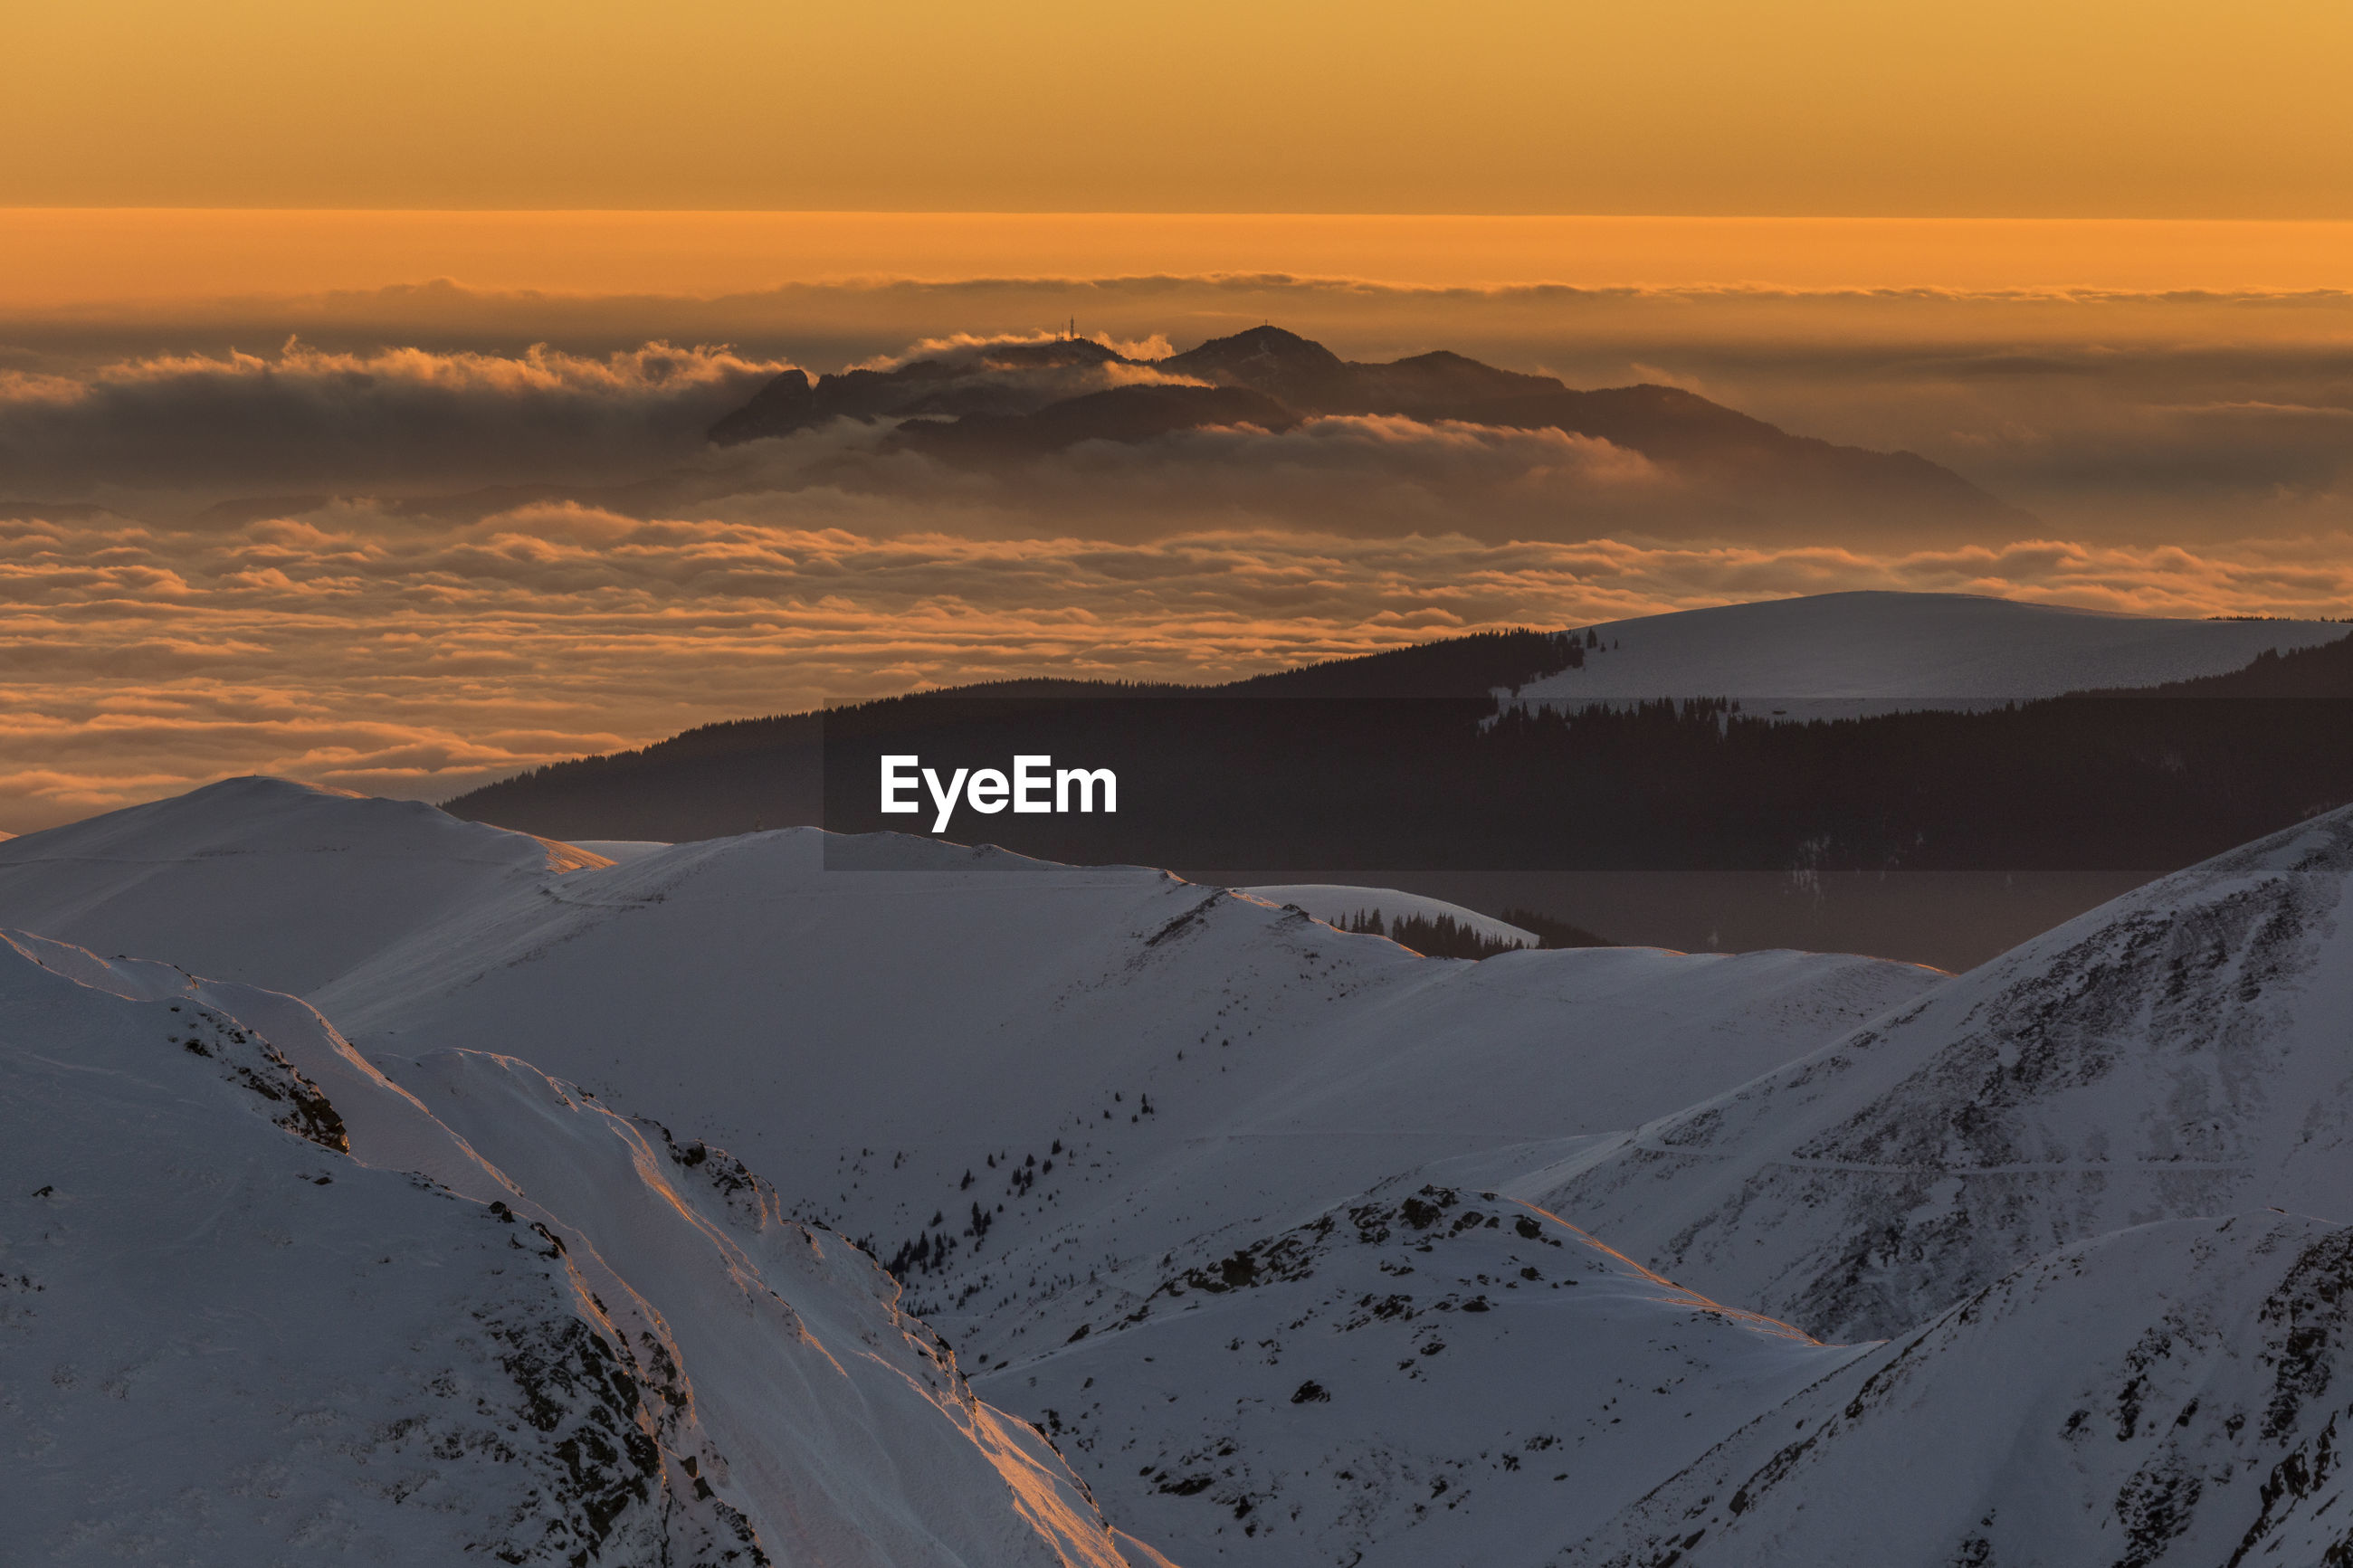 Aerial view of snowcapped mountains against sky during sunset, fagaras mountains